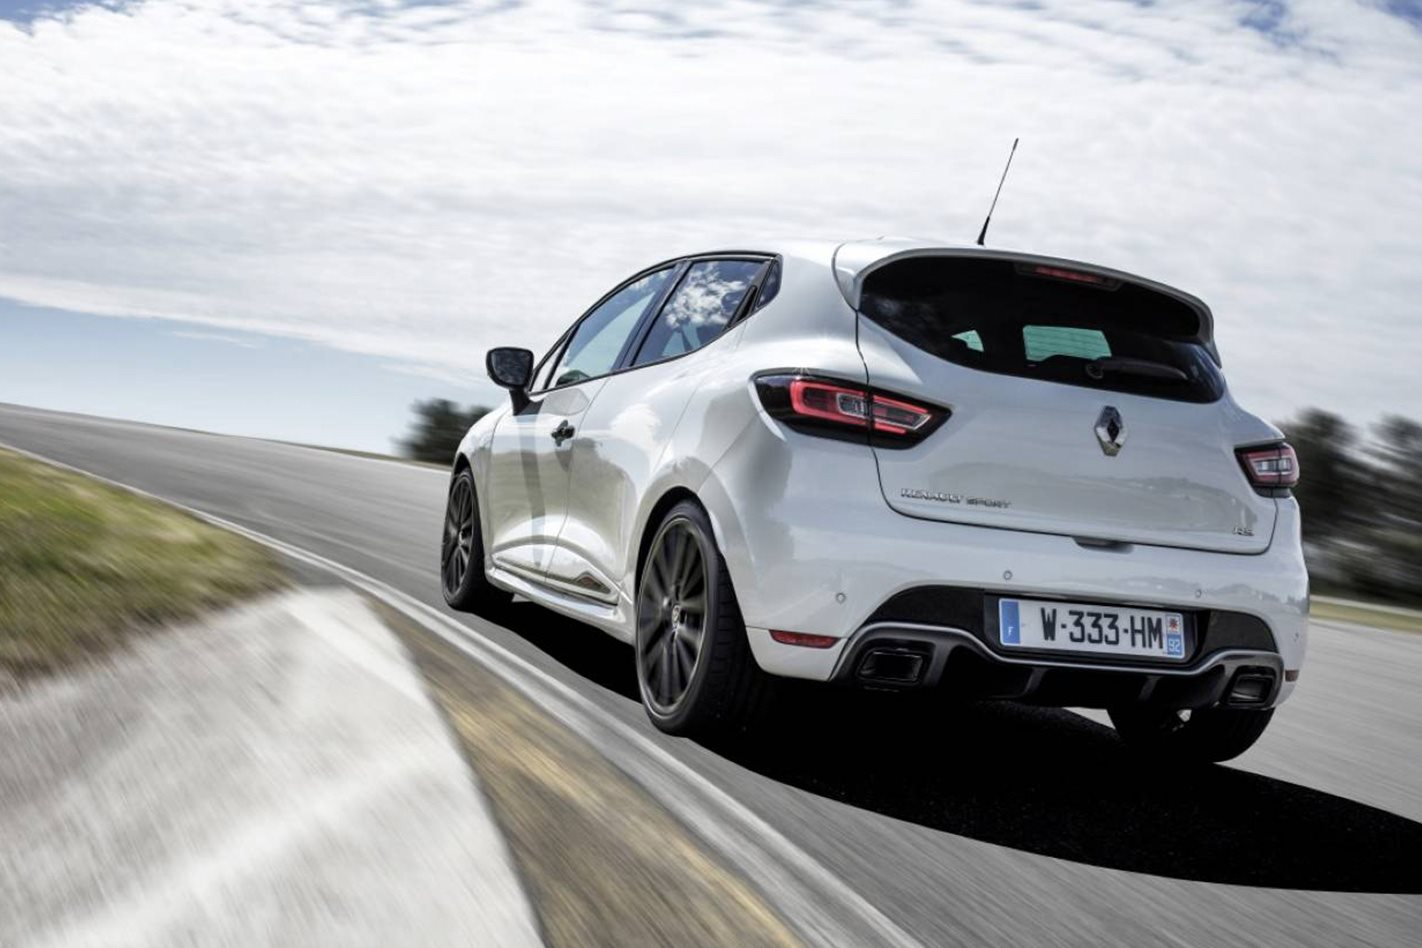 2018 Renault Clio RS Trophy local pricing and specs announced